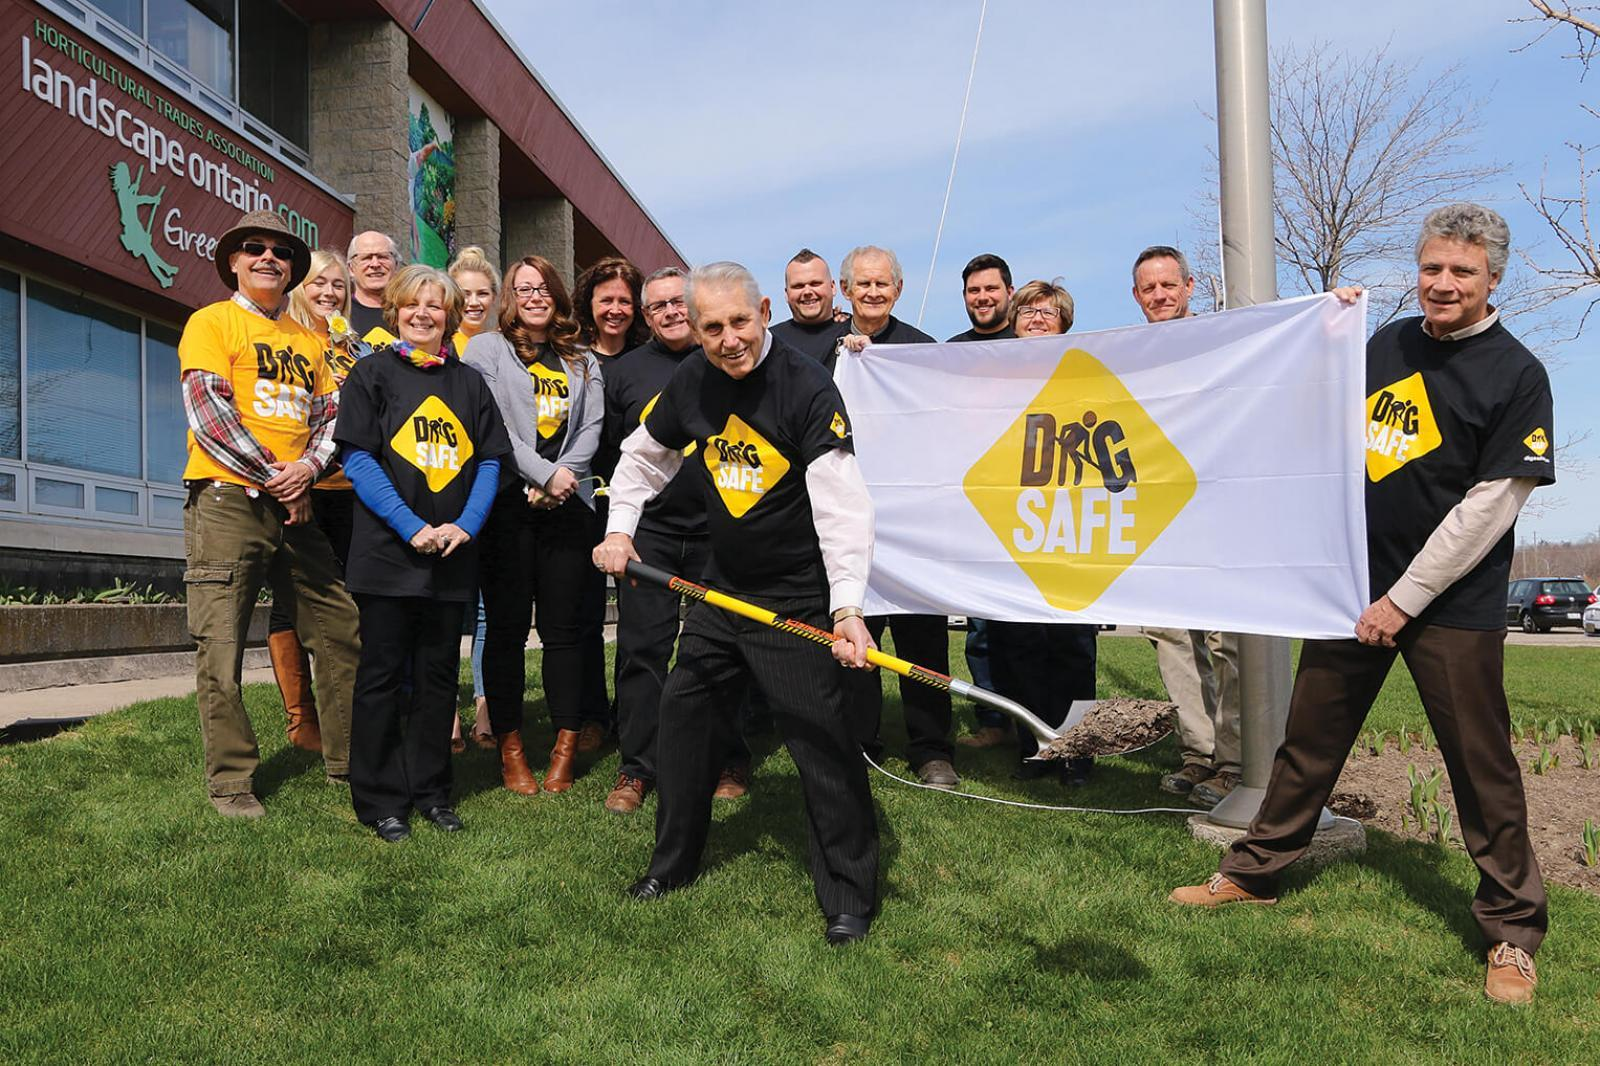 A Dig Safe flag was raised at the LO home office in Milton to promote April as Dig Safe Month.